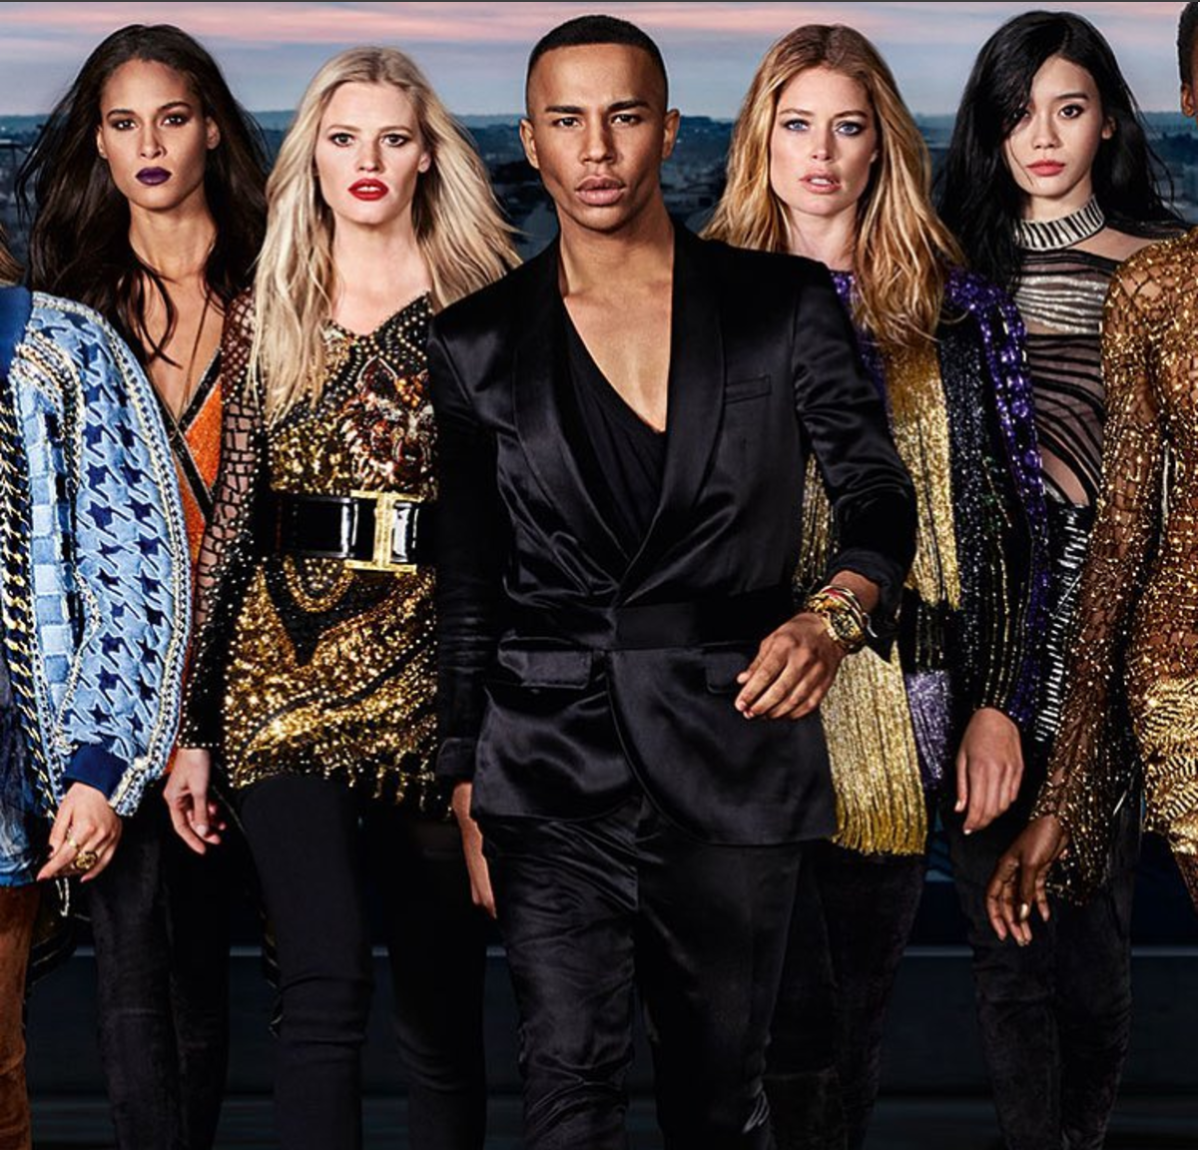 BALMAIN AND L'ORÉAL DIVE INTO DIVERSITY FOR NEW COLLABORATION